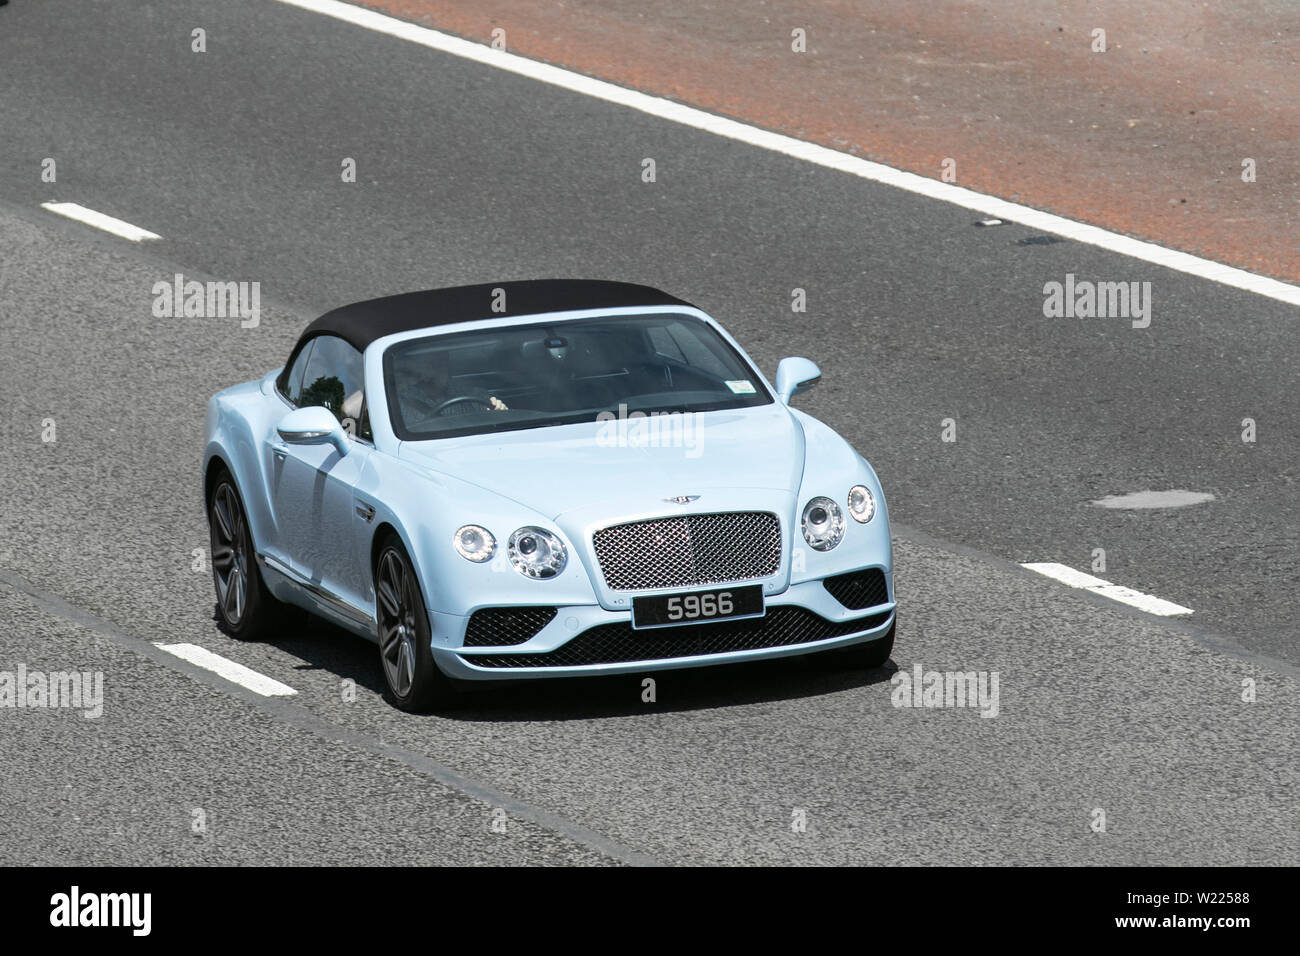 Powder Blue Bentley Convertible M6 Lancaster Uk Vehicular Traffic Transport Modern Saloon Cars With Private Number Plate Personalised Cherished Dateless Dvla Registration Marks Registrations Saloon Cars North Bound On The 3 Lane Highway